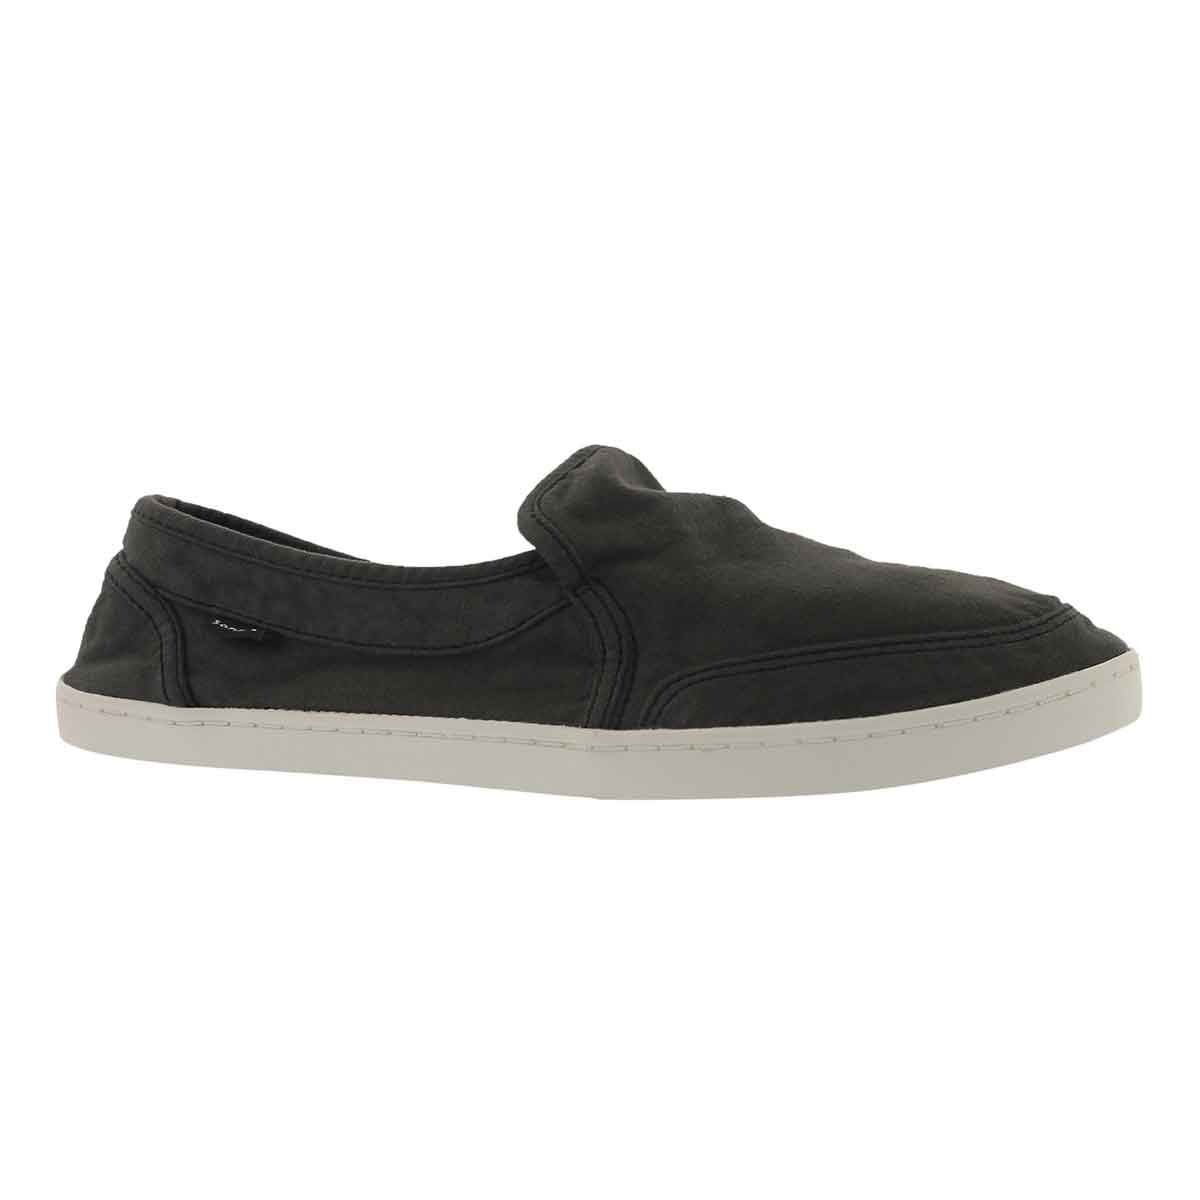 Lds Pair O Dice washed blk slip on shoe